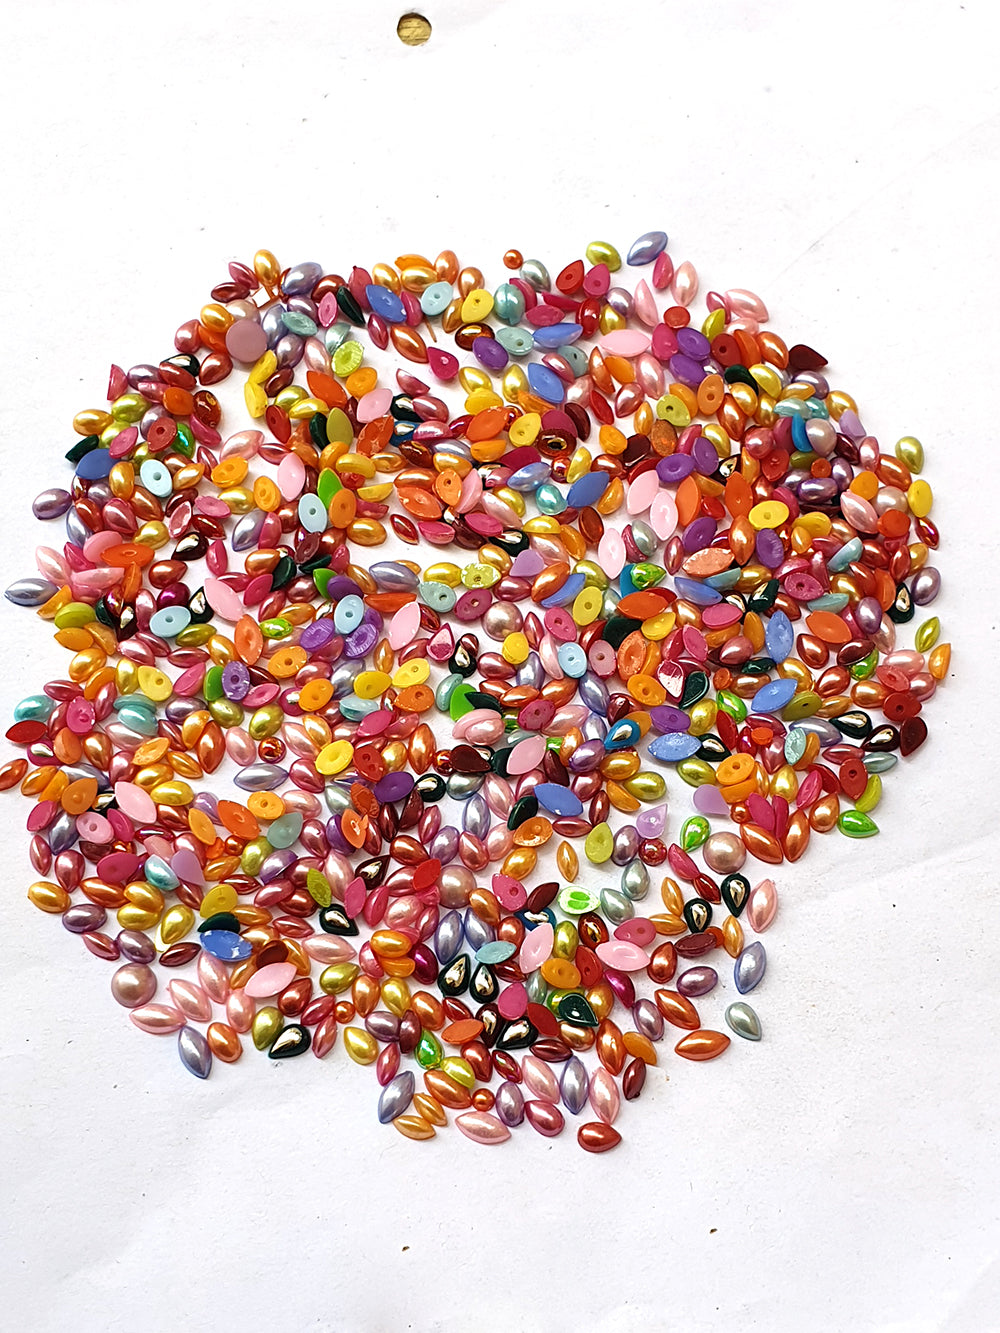 Wholesale Acrylic (Lucite) Rhinestones hobby and Crafts 1440 Pieces Package Pearlized  Rhinestones Flat Back Mix Color Assorted Shape 4x6mm Size